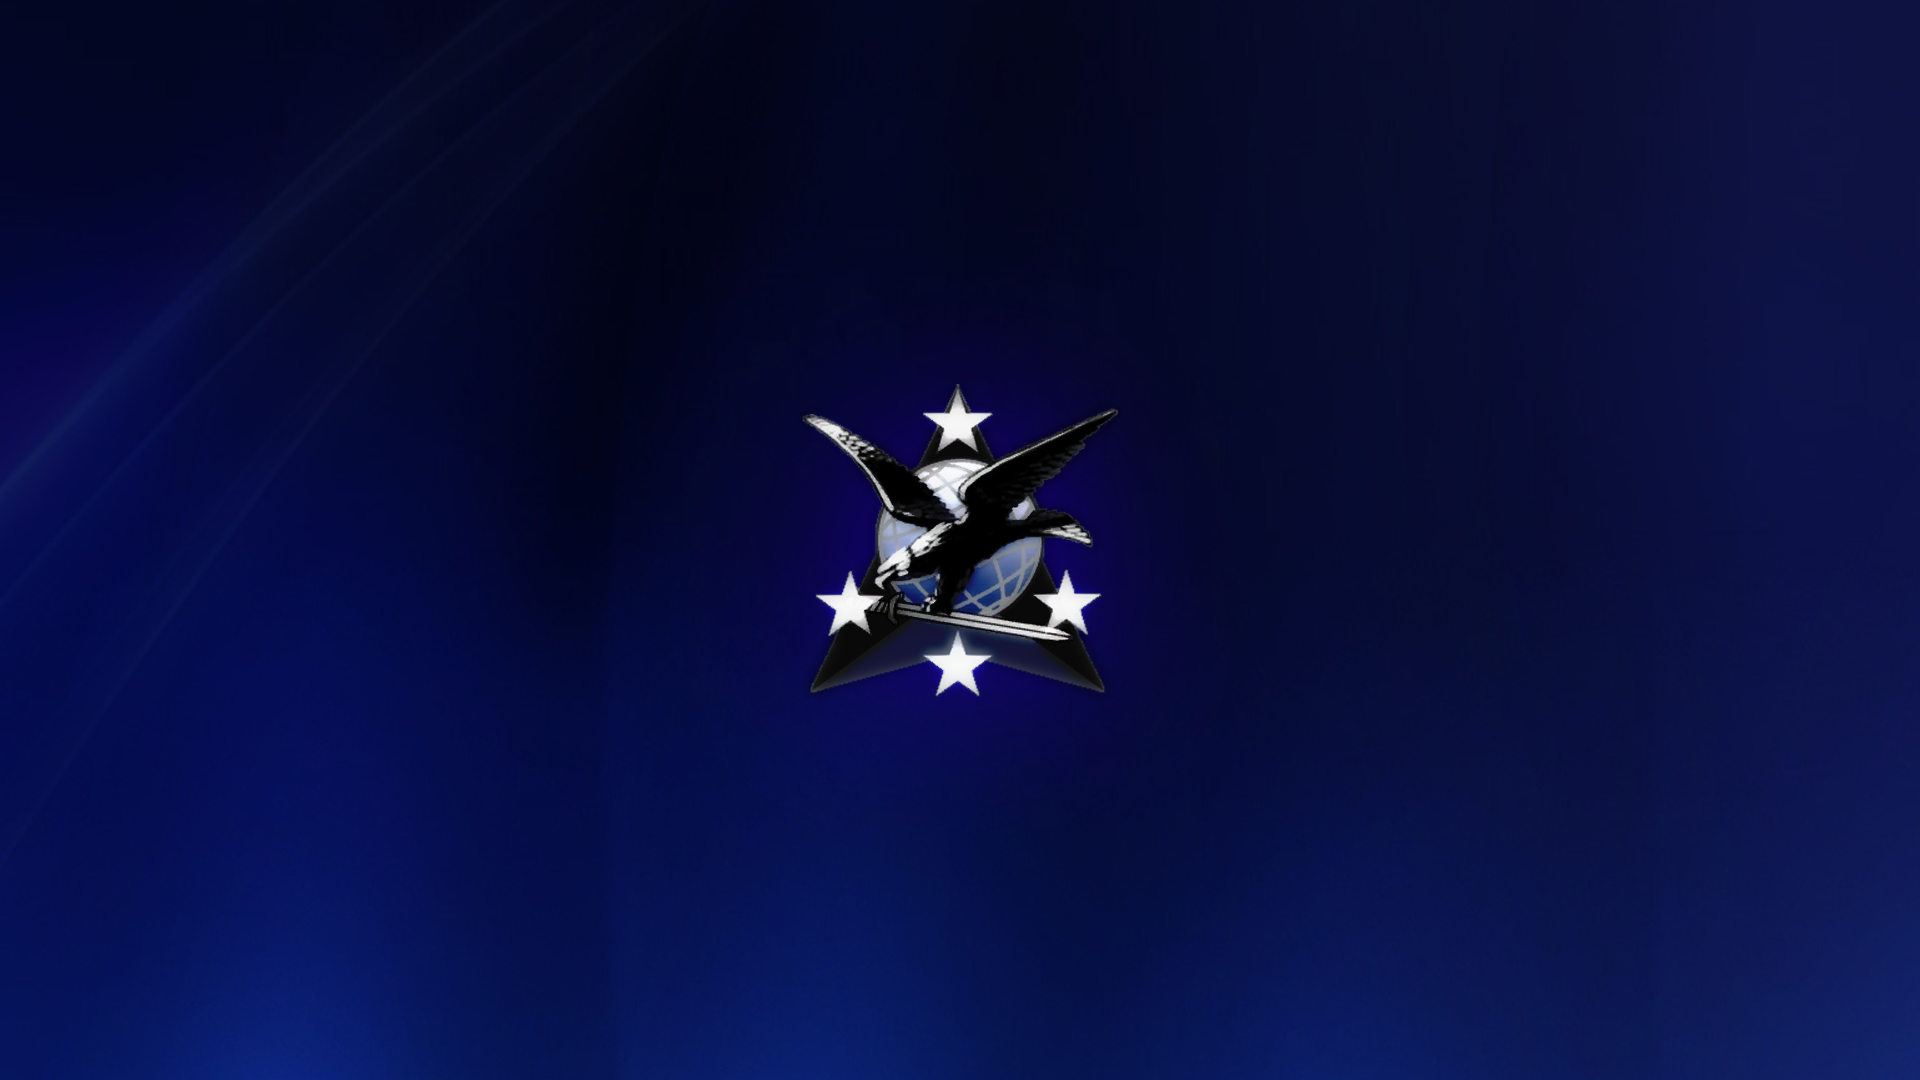 Go Back Images For Navy Seal Wallpaper Iphone 1920x1080